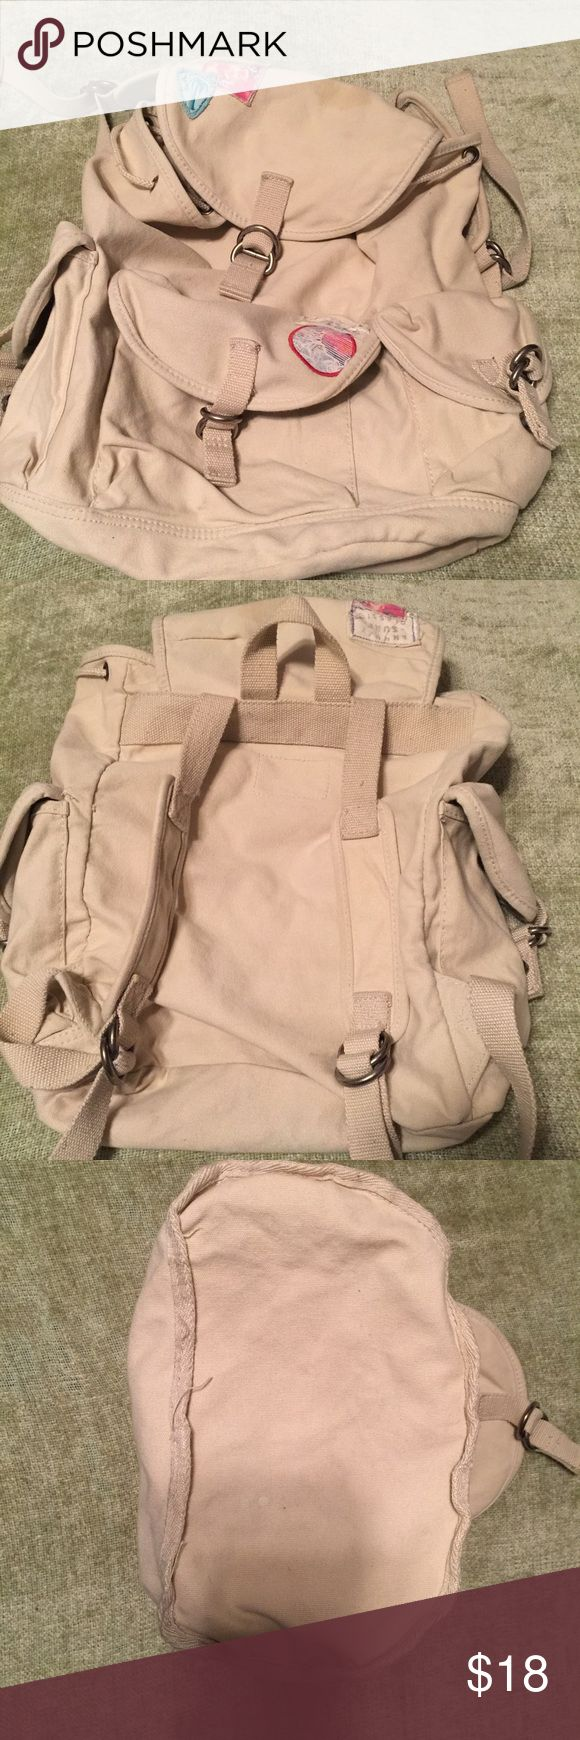 Aeropostale cream colored canvas backpack Aeropostale cream backpack   This is a very clean backpack. It measures 12 inches wide and 14 inches tall. It has several compartments and is in great shape. Please view all pictures. Aeropostale Bags Backpacks